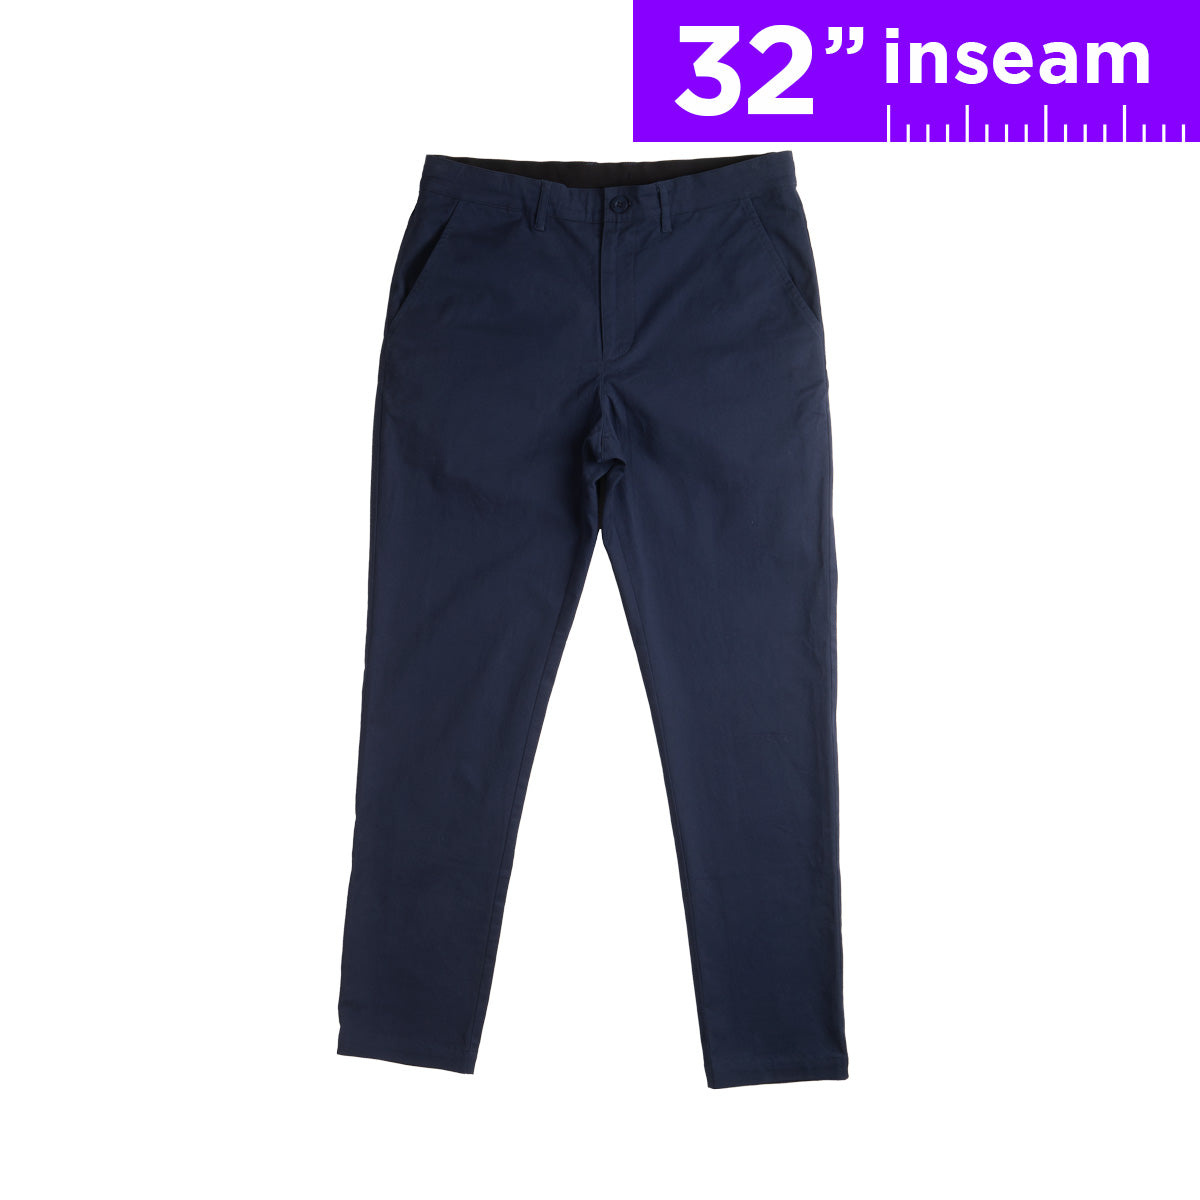 "32"" Navy Blue Flex All Day Chino Pants"